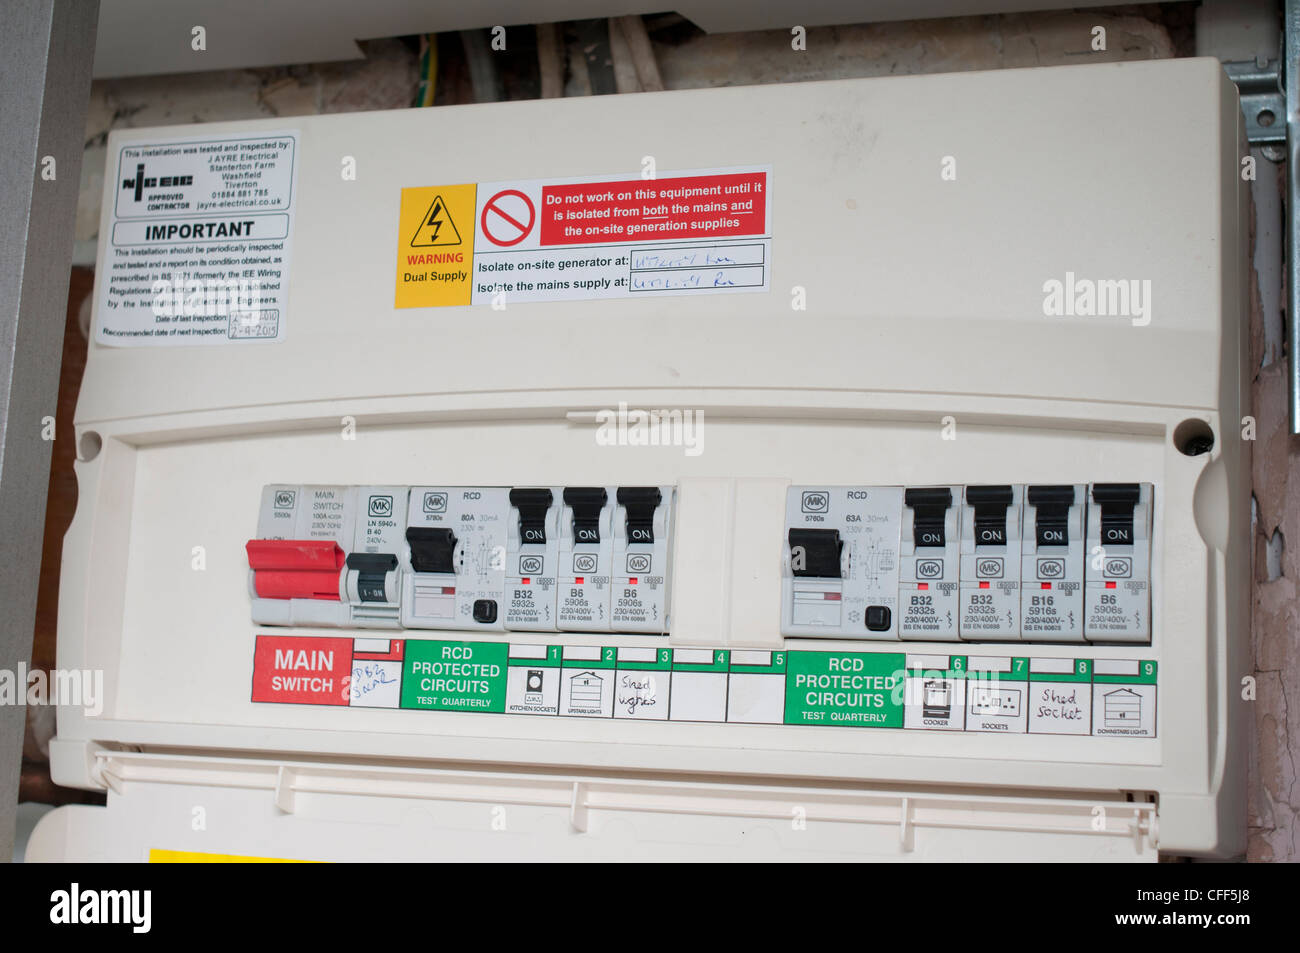 domestic fuse box CFF5J8 fuse box house stock photos & fuse box house stock images alamy home fuse box at edmiracle.co